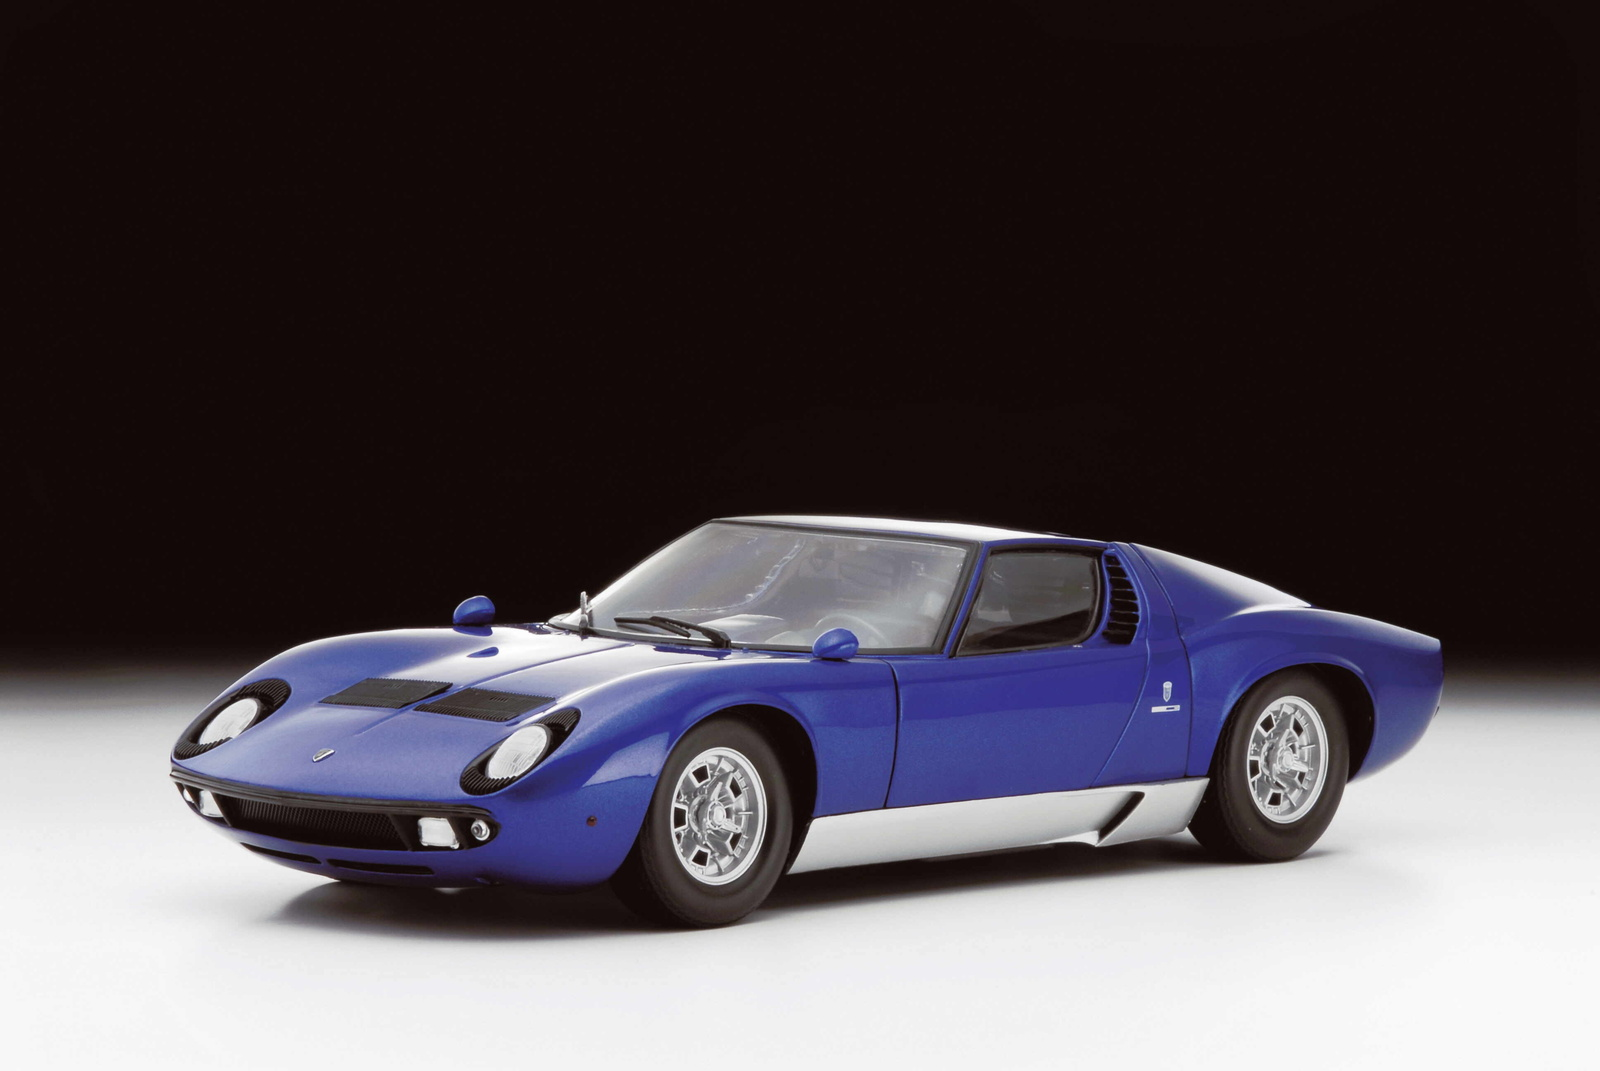 lamborghini diablo facts with 1967 Lamborghini Miura Pictures C16679 on Editor pambazuka together with 5 Facts About Lamborghini further Vertical Lambo Doors Lamborghini Door Kits For Your also 2002 Subaru Outback Rear Brakes as well 1967 Lamborghini Miura Pictures C16679.